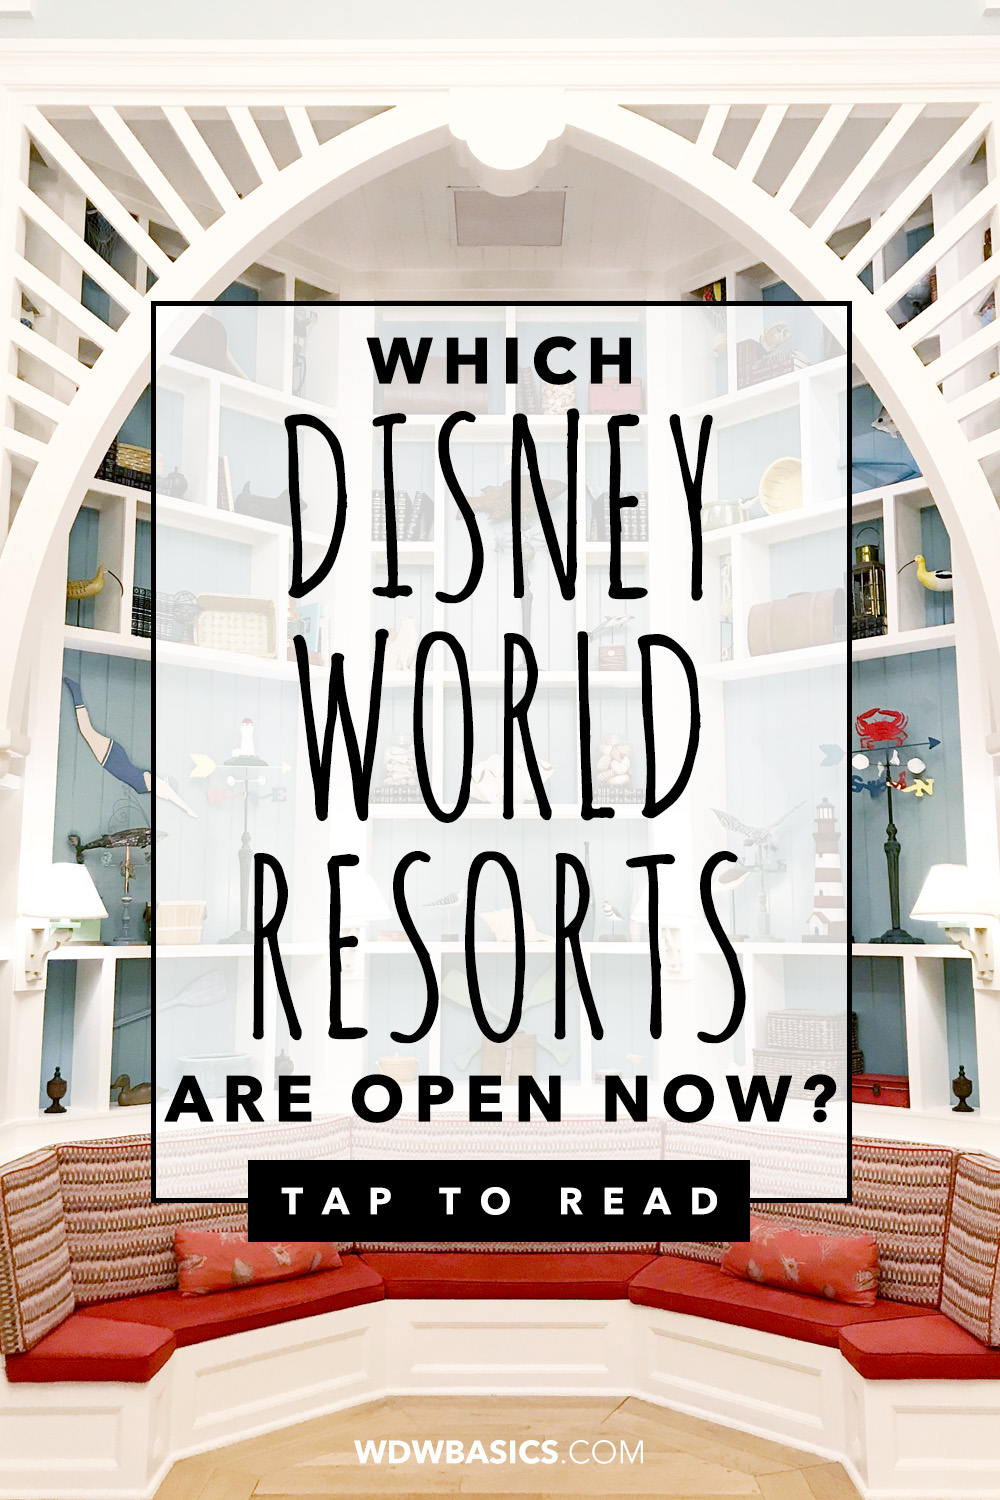 Which Disney World Resorts are open now?